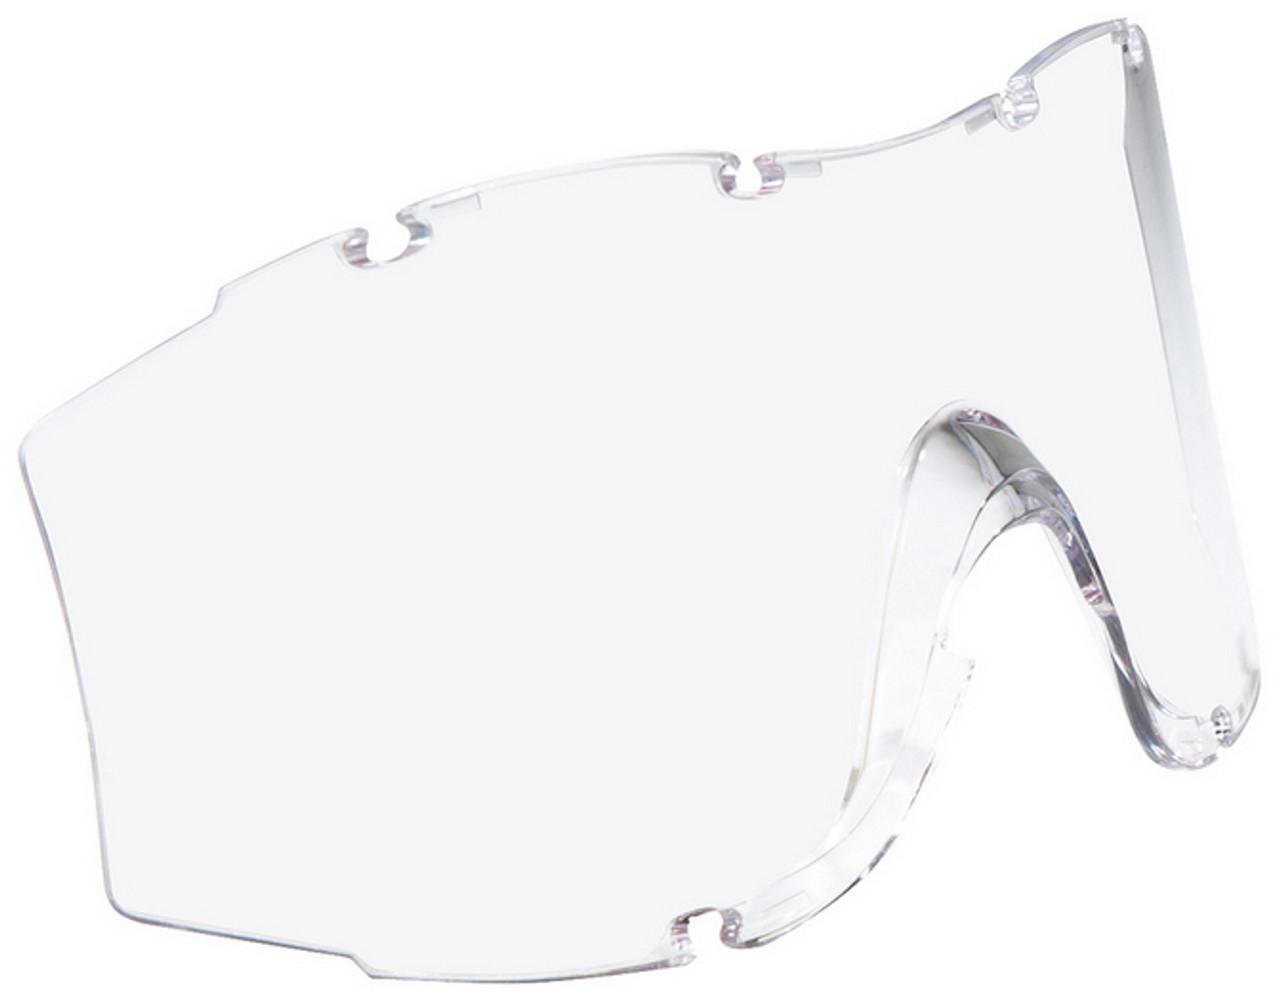 66e11a5bce Bolle X1000 Tactical Safety Goggles Replacement Lens - Safety Glasses USA